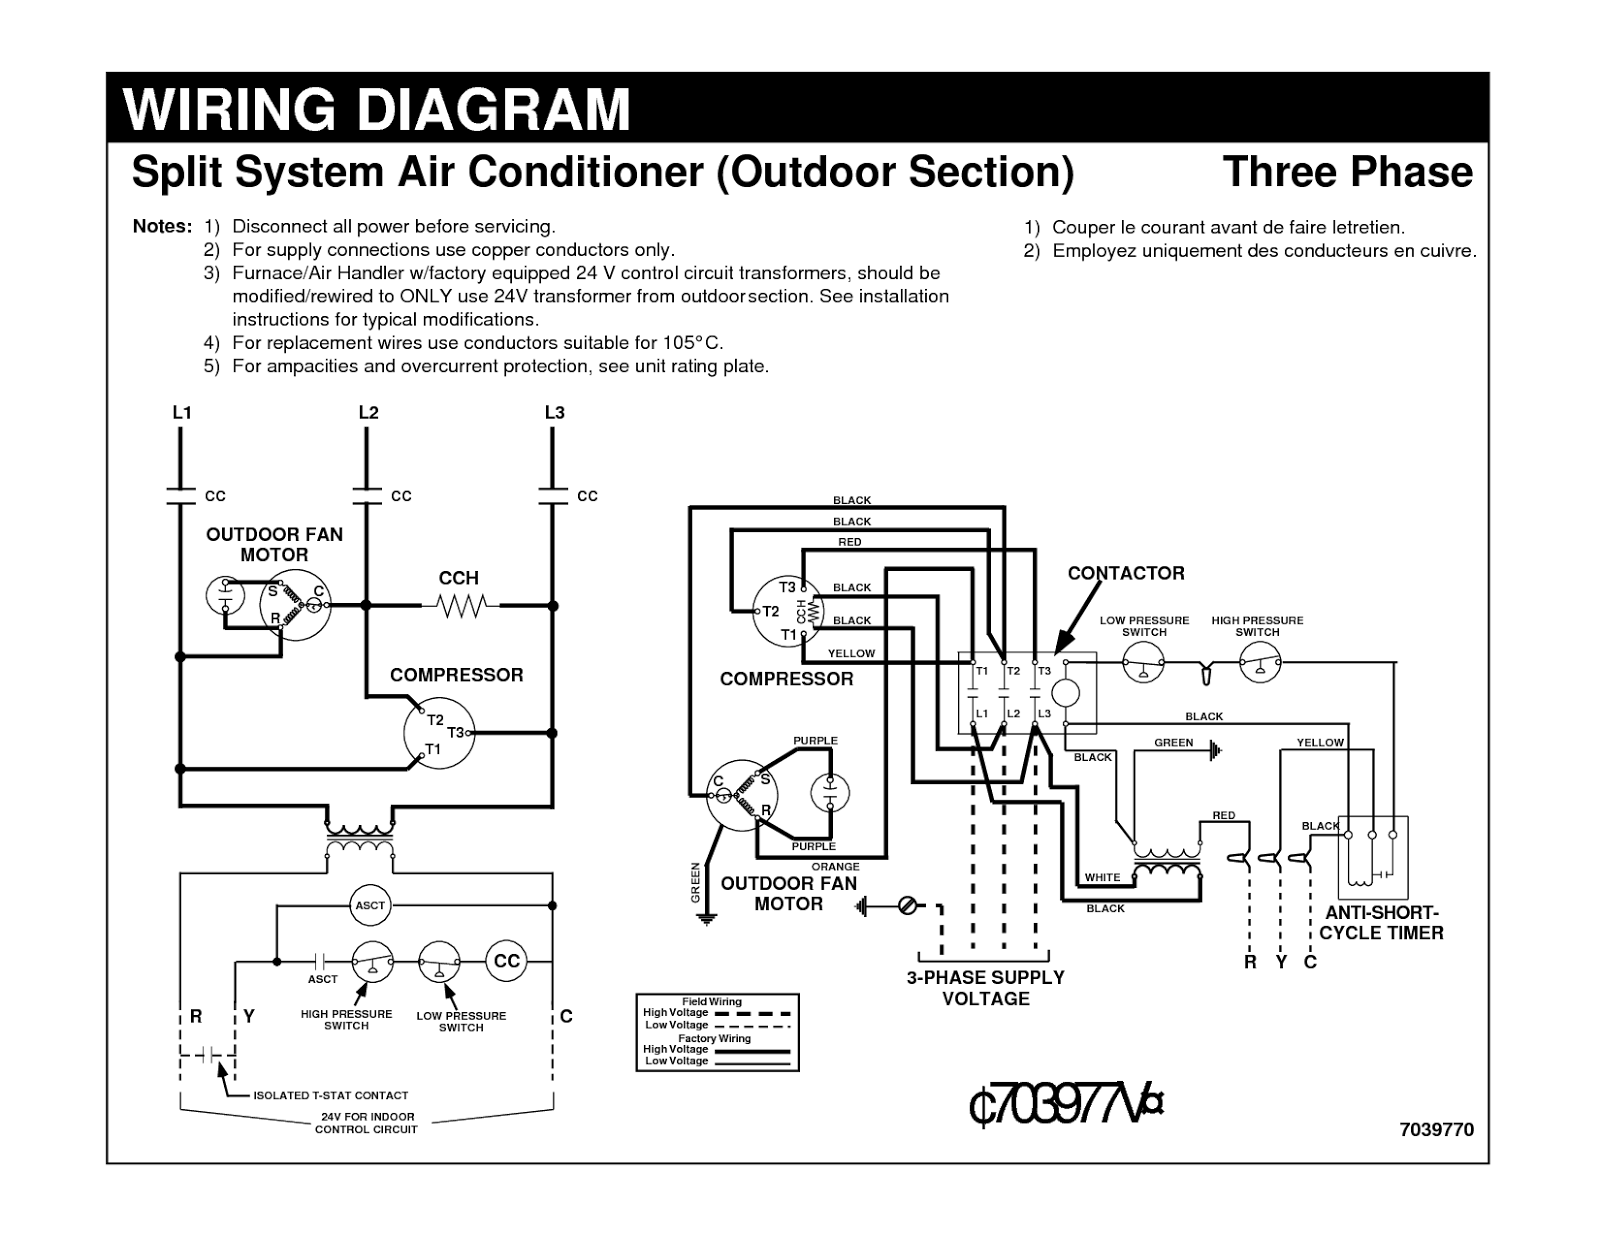 Electrical Wiring Diagrams for Air Conditioning Systems – Part One  #121212